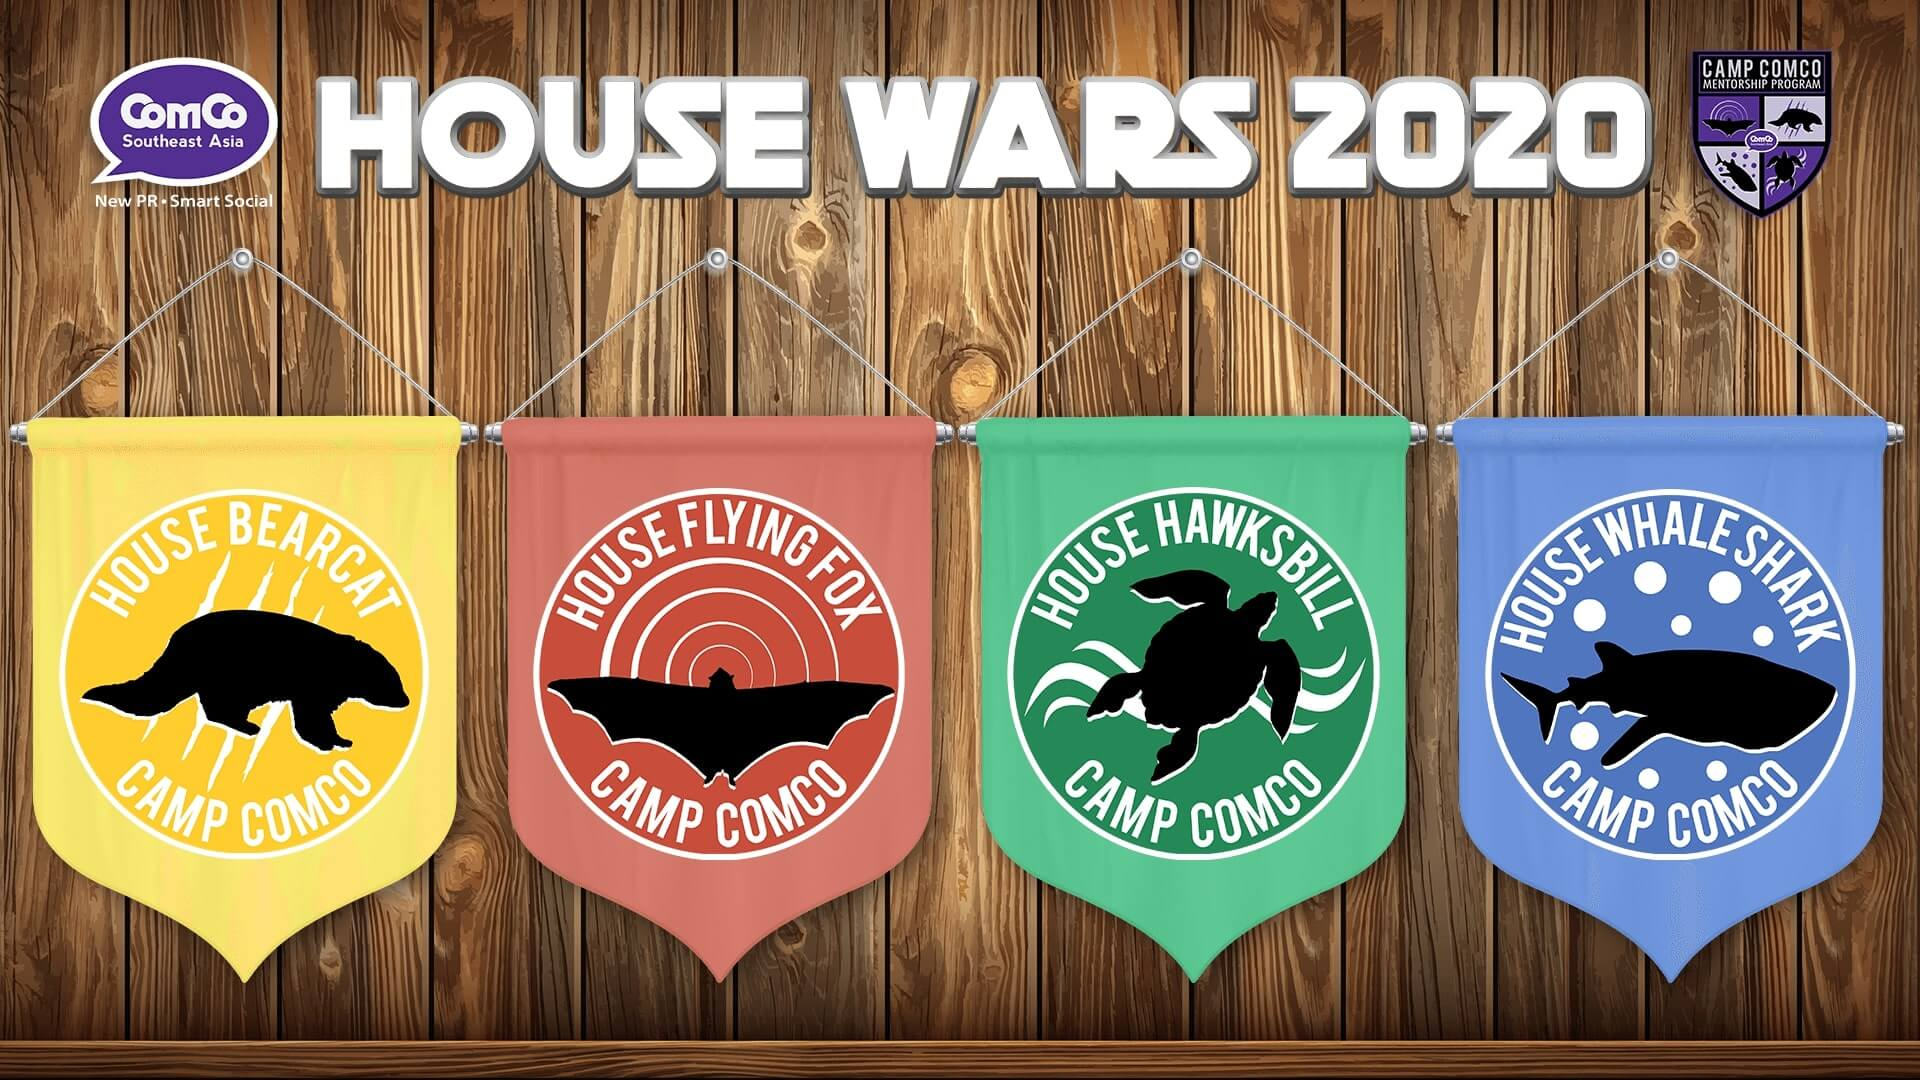 ComCo Southeast Asia successfully concludes House Wars 2020, opens Camp ComCo Cycle 14